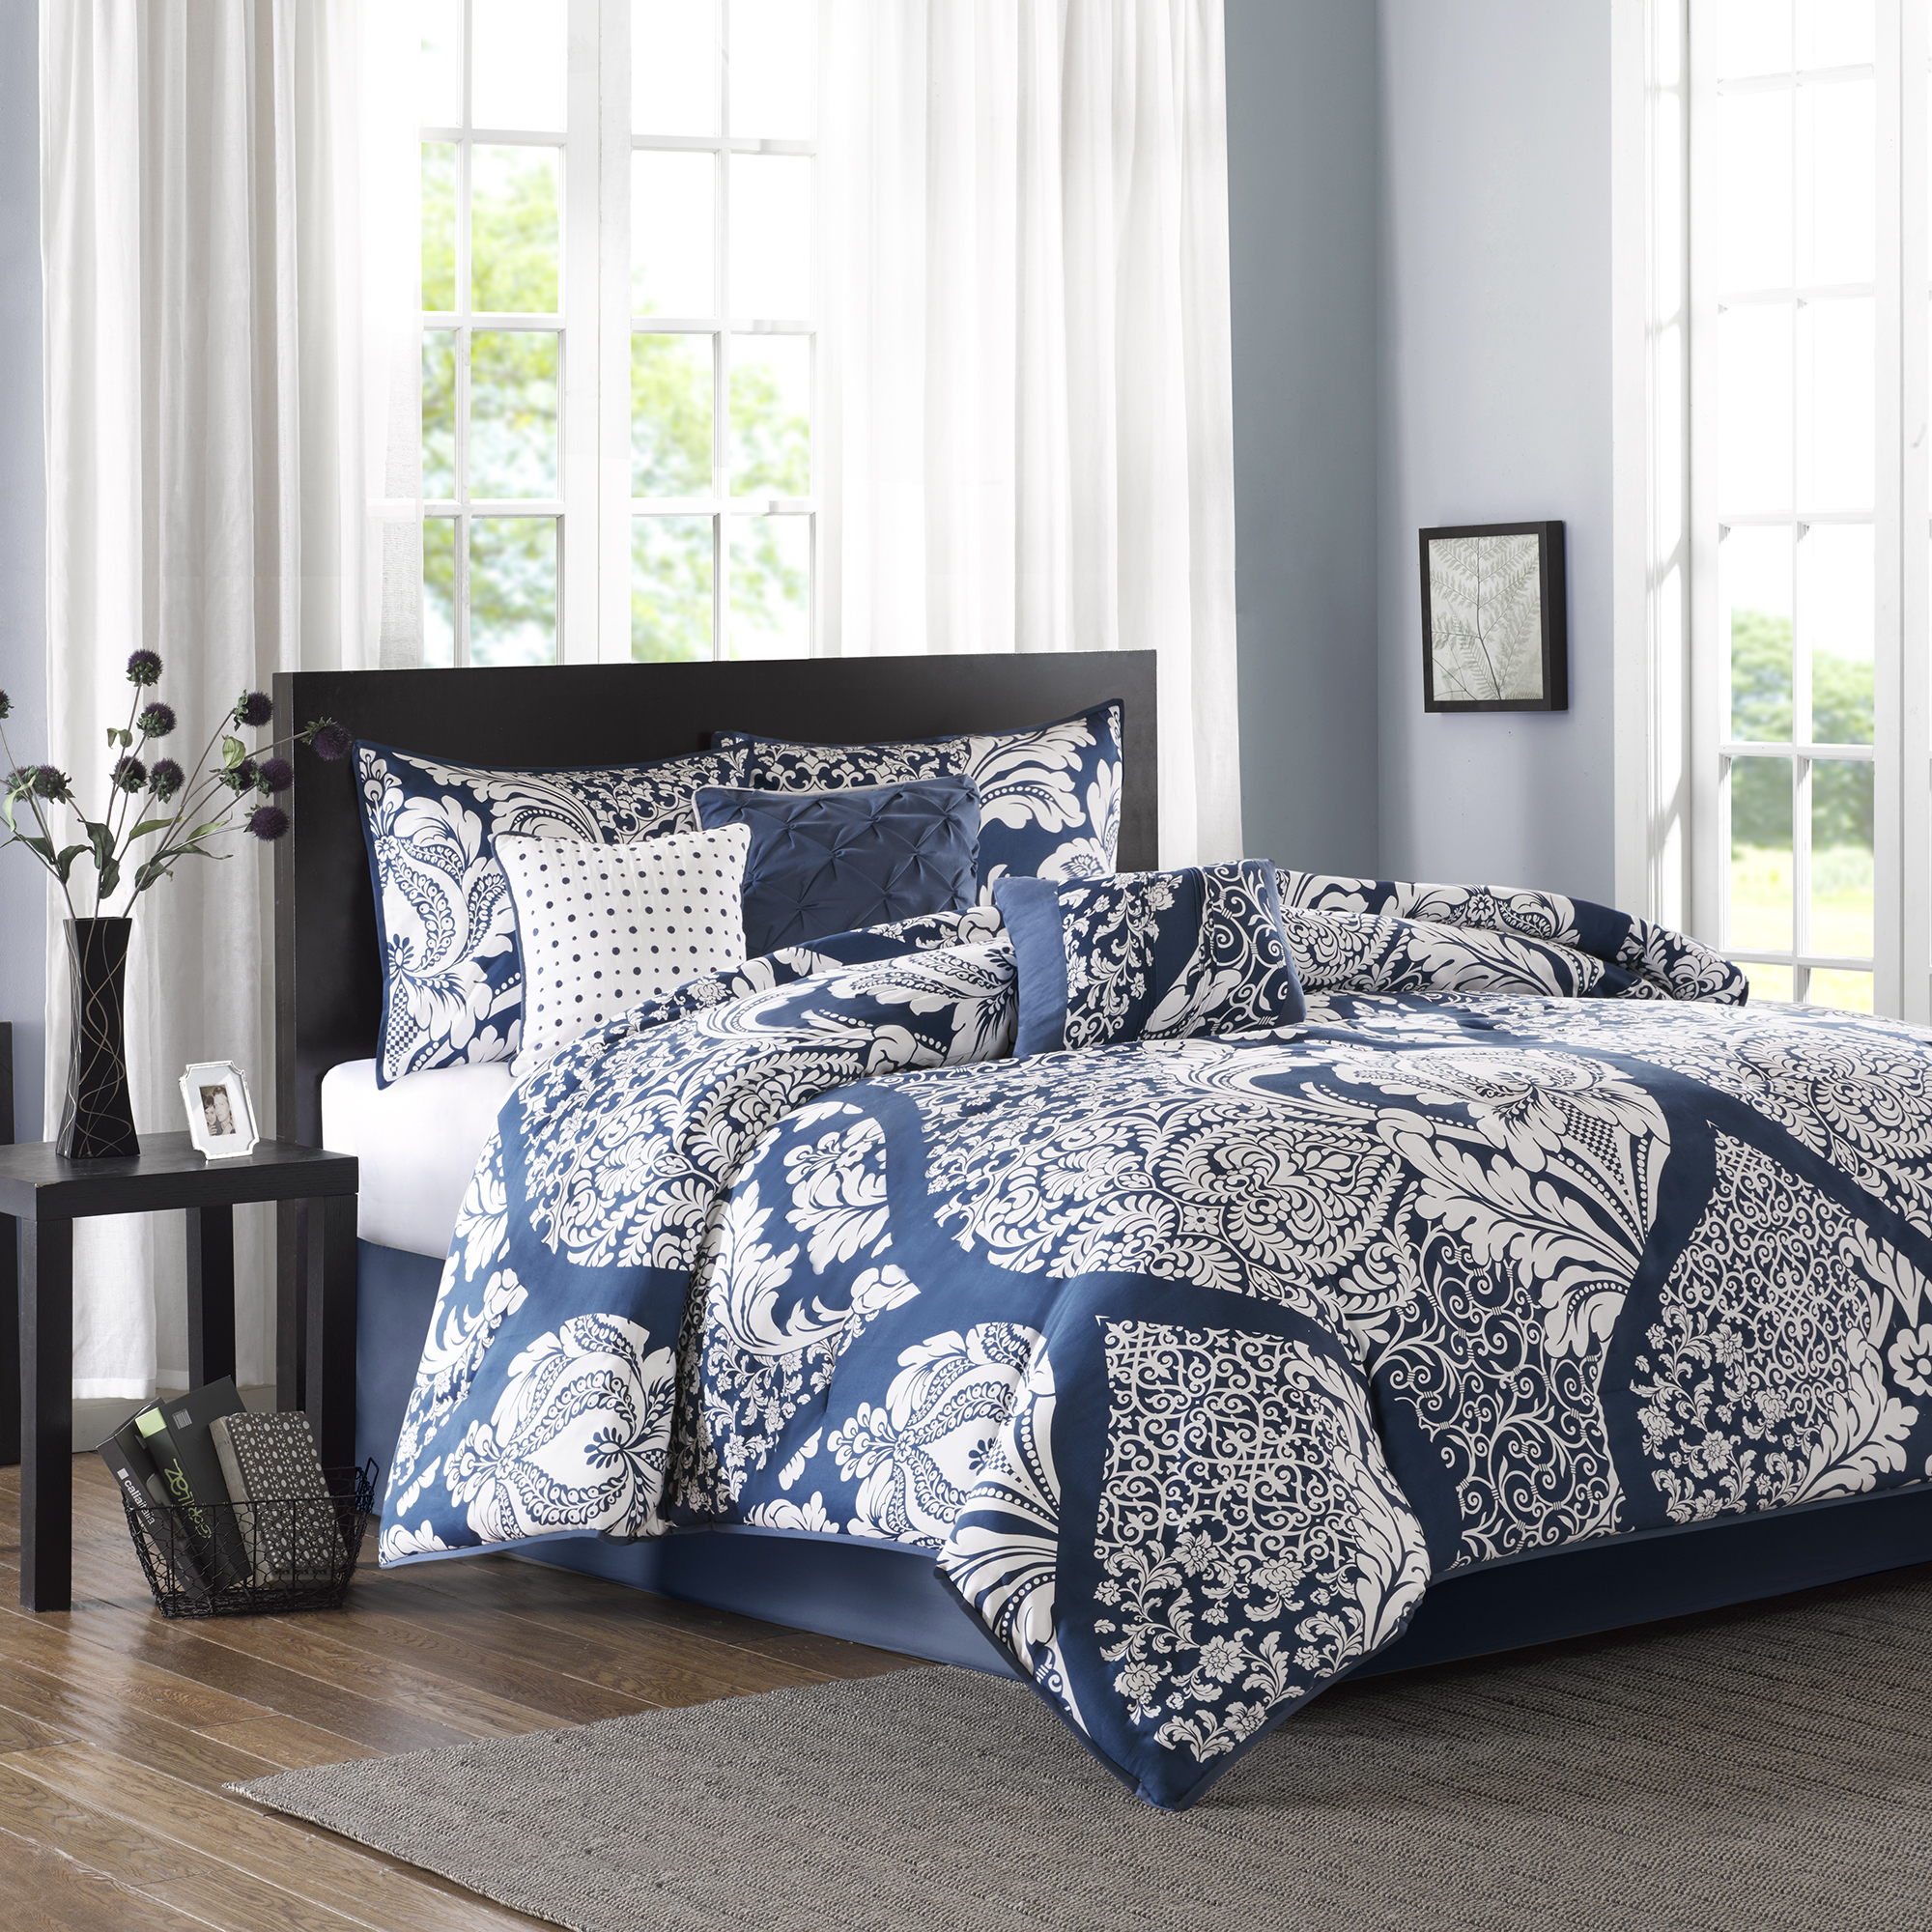 7-Piece Luxury Comforter Set in Damask, Choose your Size and Color